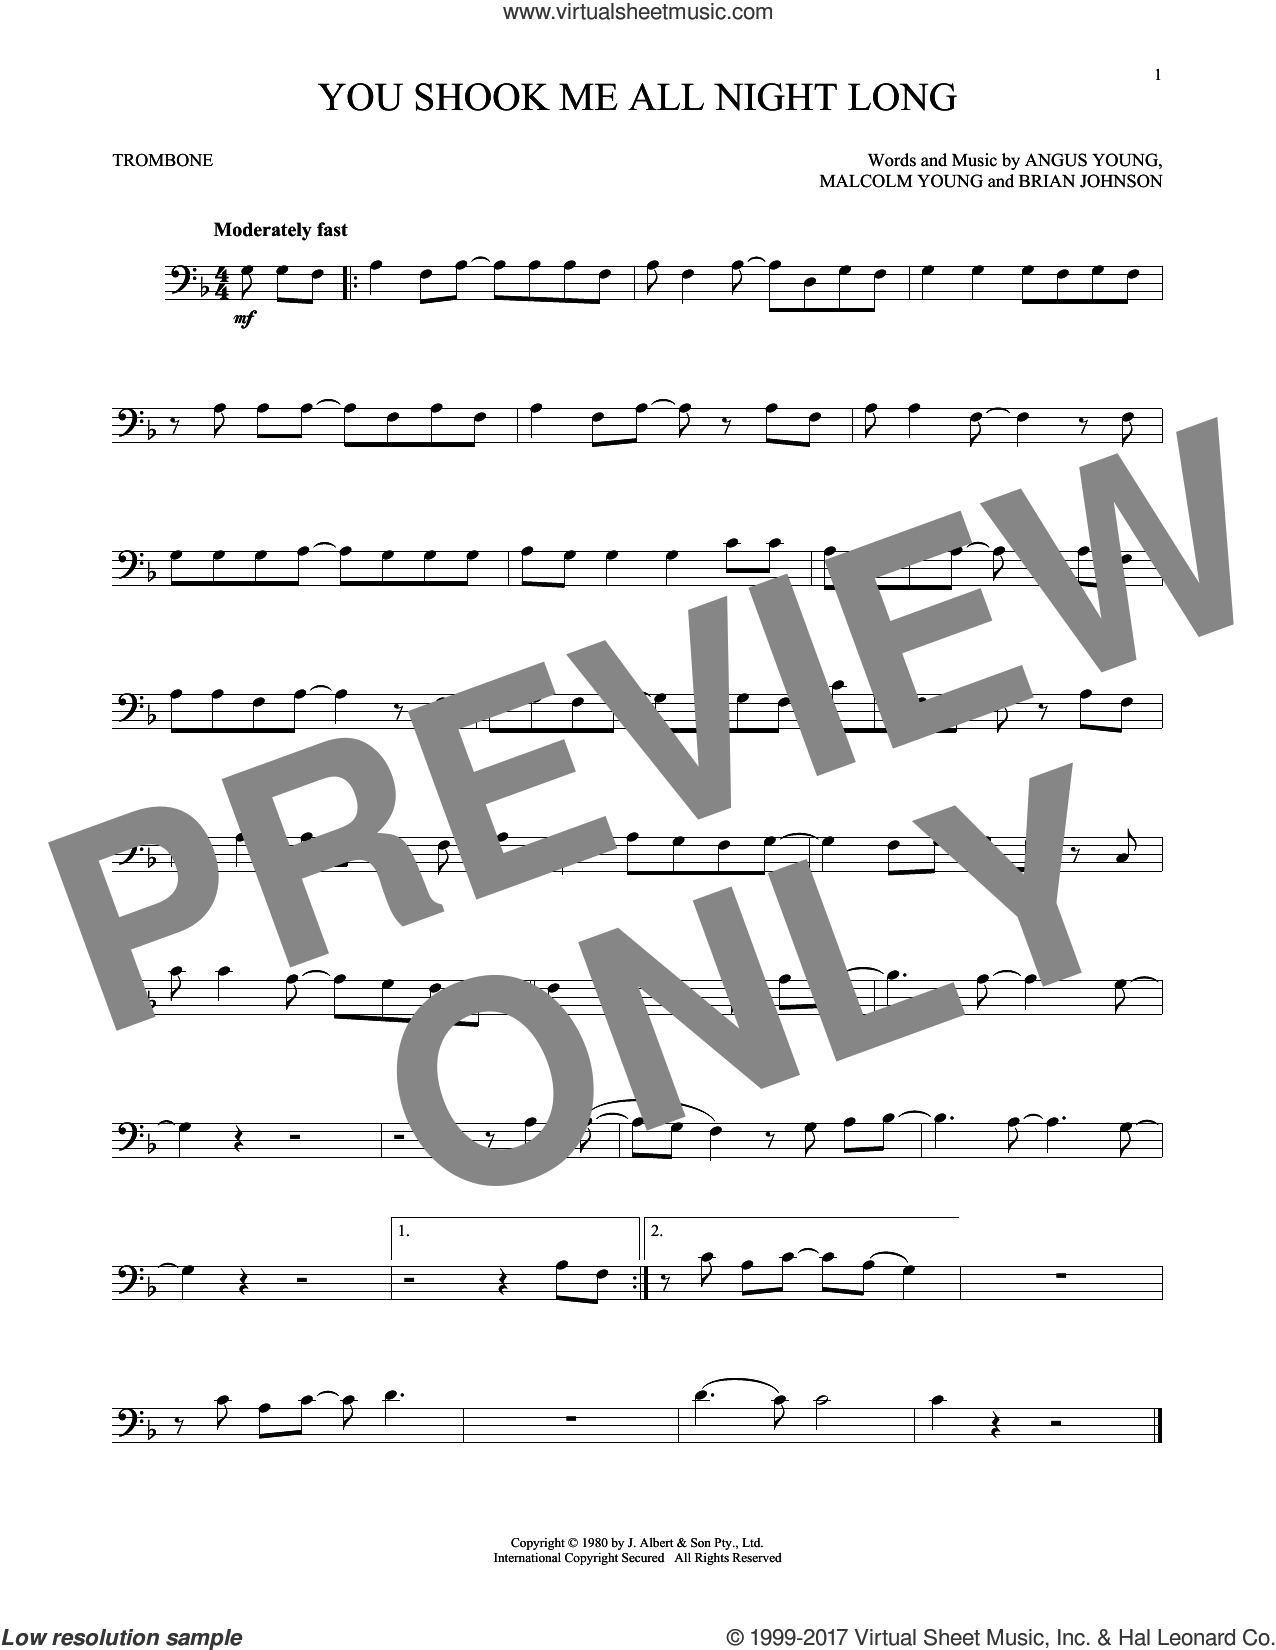 You Shook Me All Night Long sheet music for trombone solo by AC/DC, Angus Young, Brian Johnson and Malcolm Young, intermediate skill level